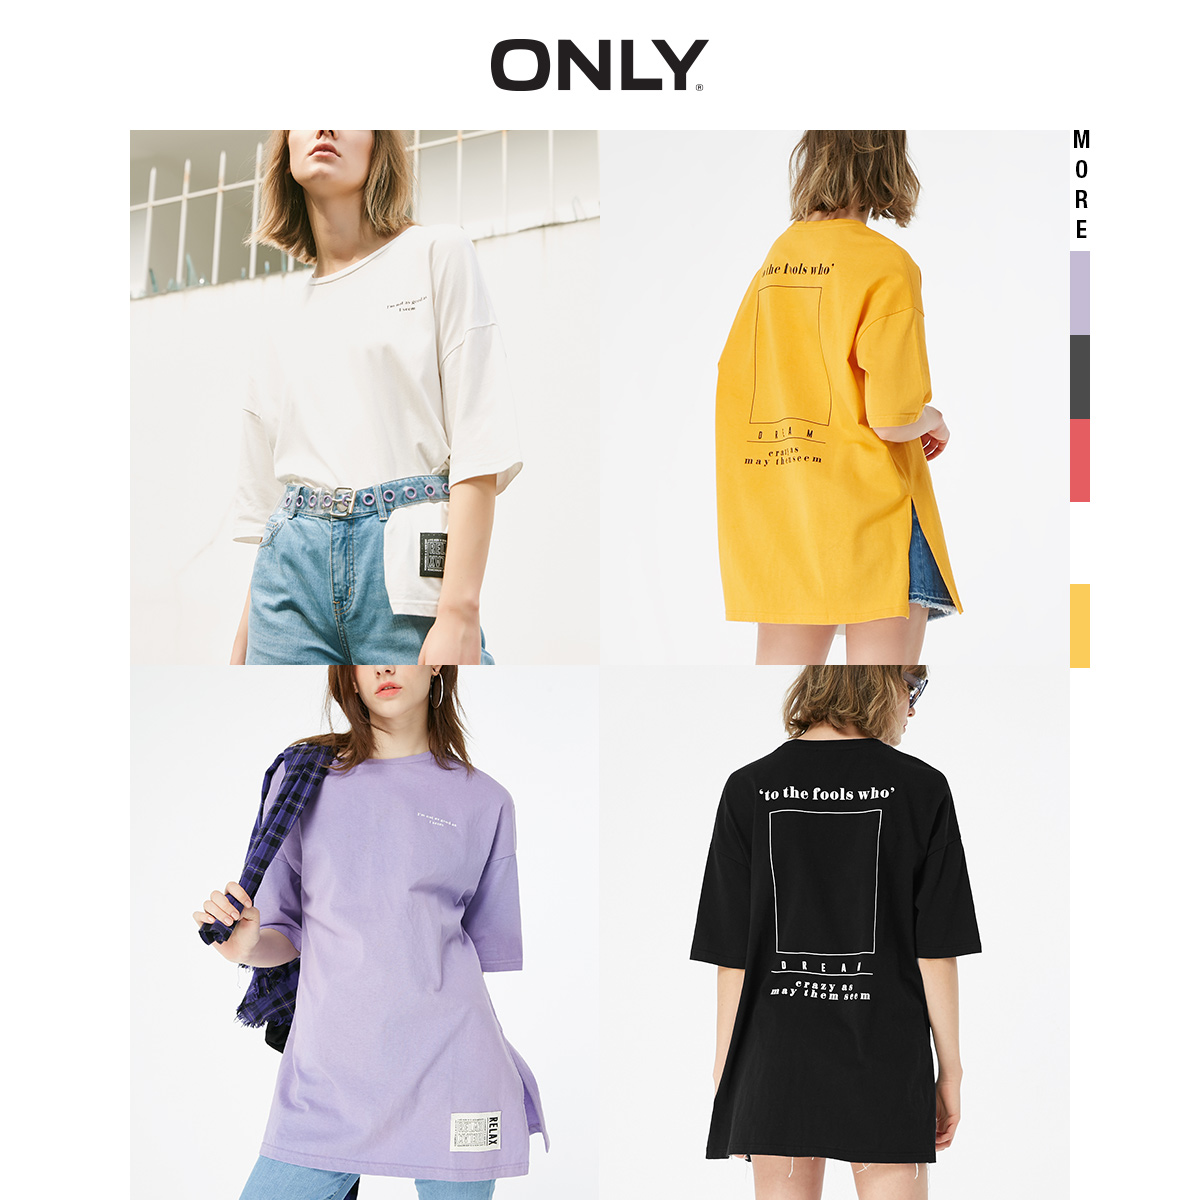 ONLY 2019 Spring Summer New Women's Loose Fit Round Neckline Letter Print Thin T-shirt  119101548